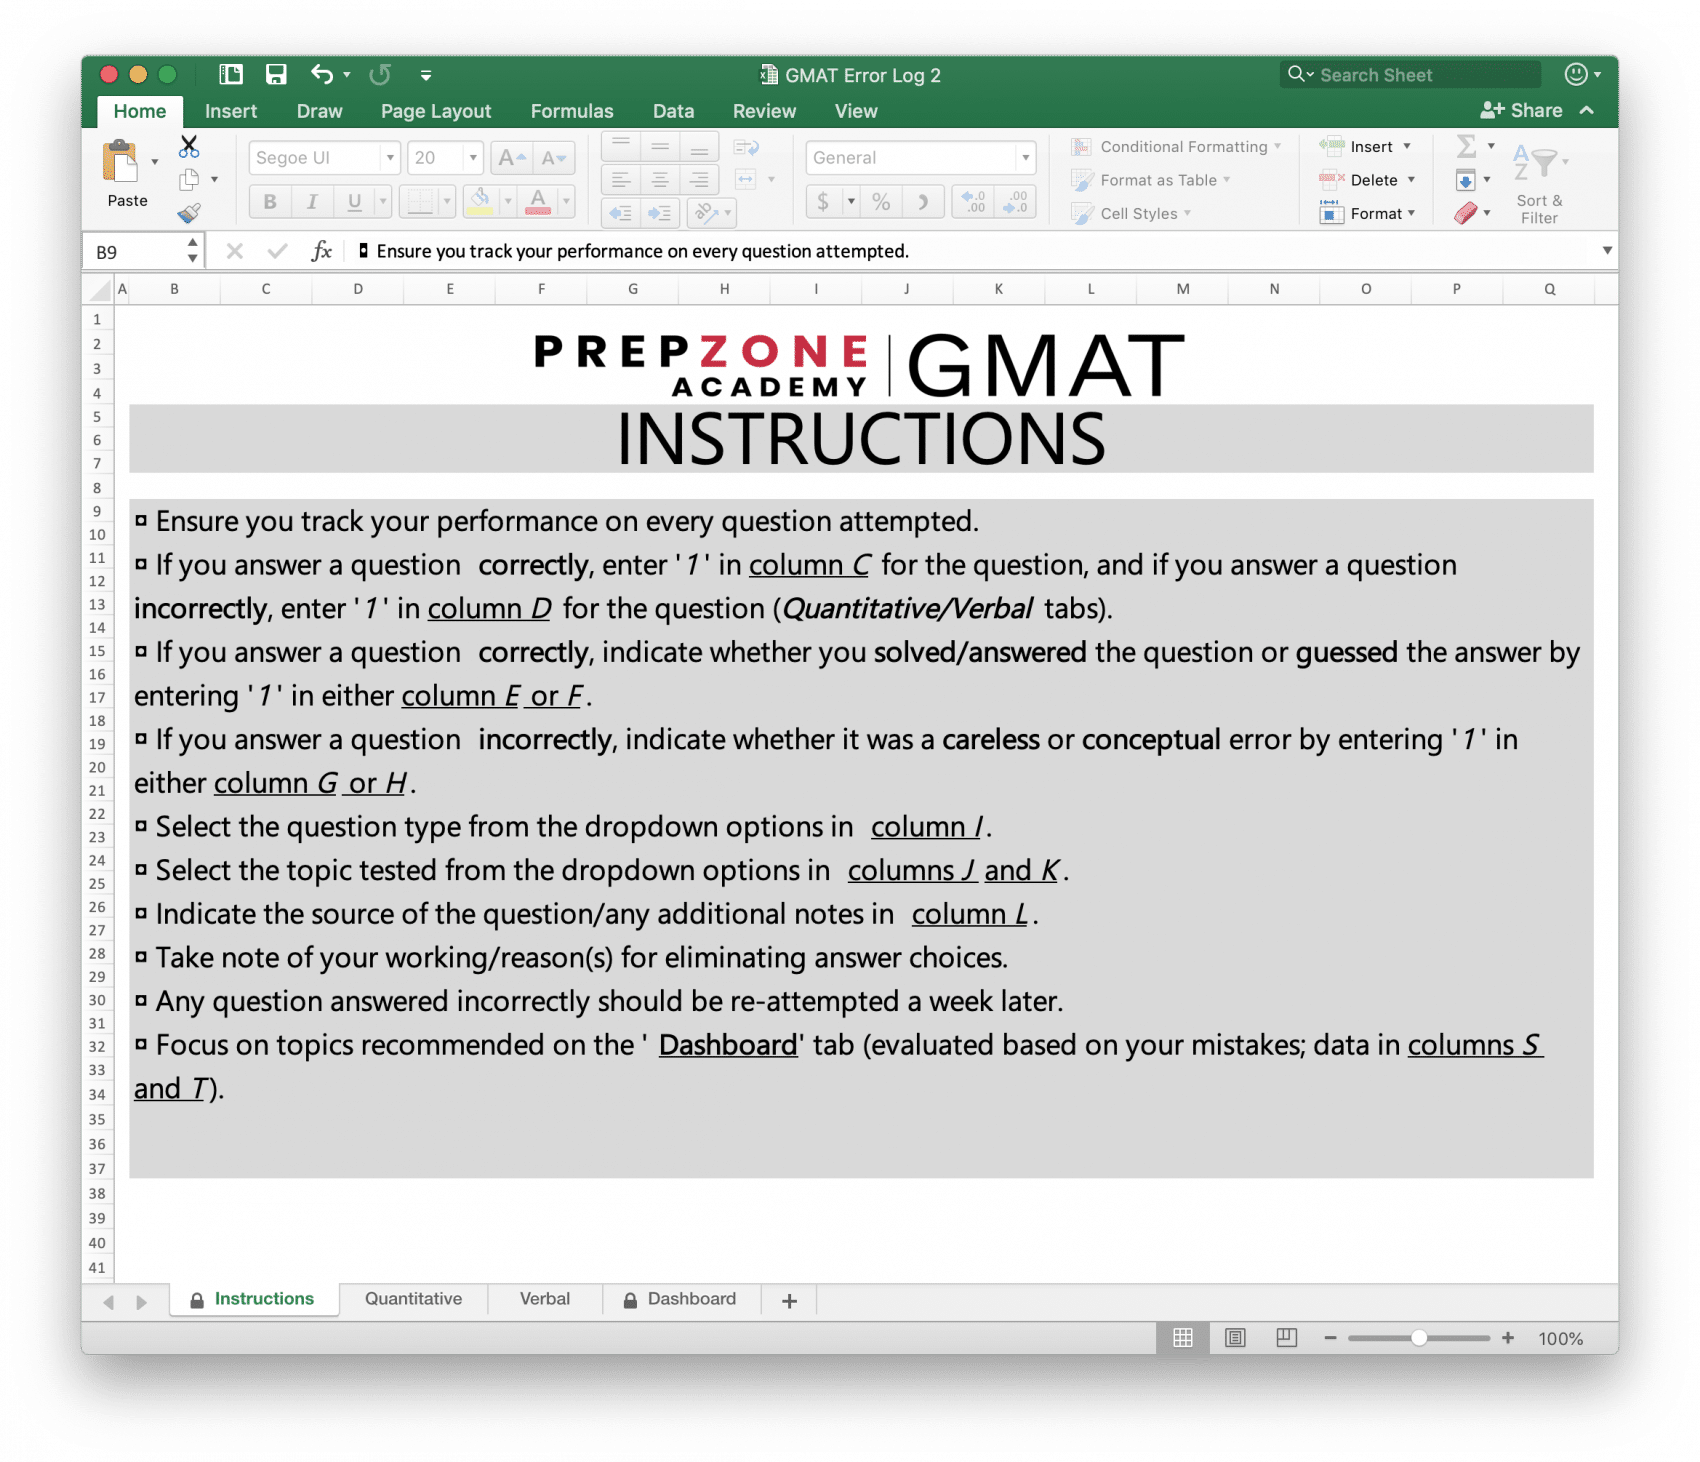 Excel Error Log: Use This GMAT Error Log To Score 700+ On The GMAT